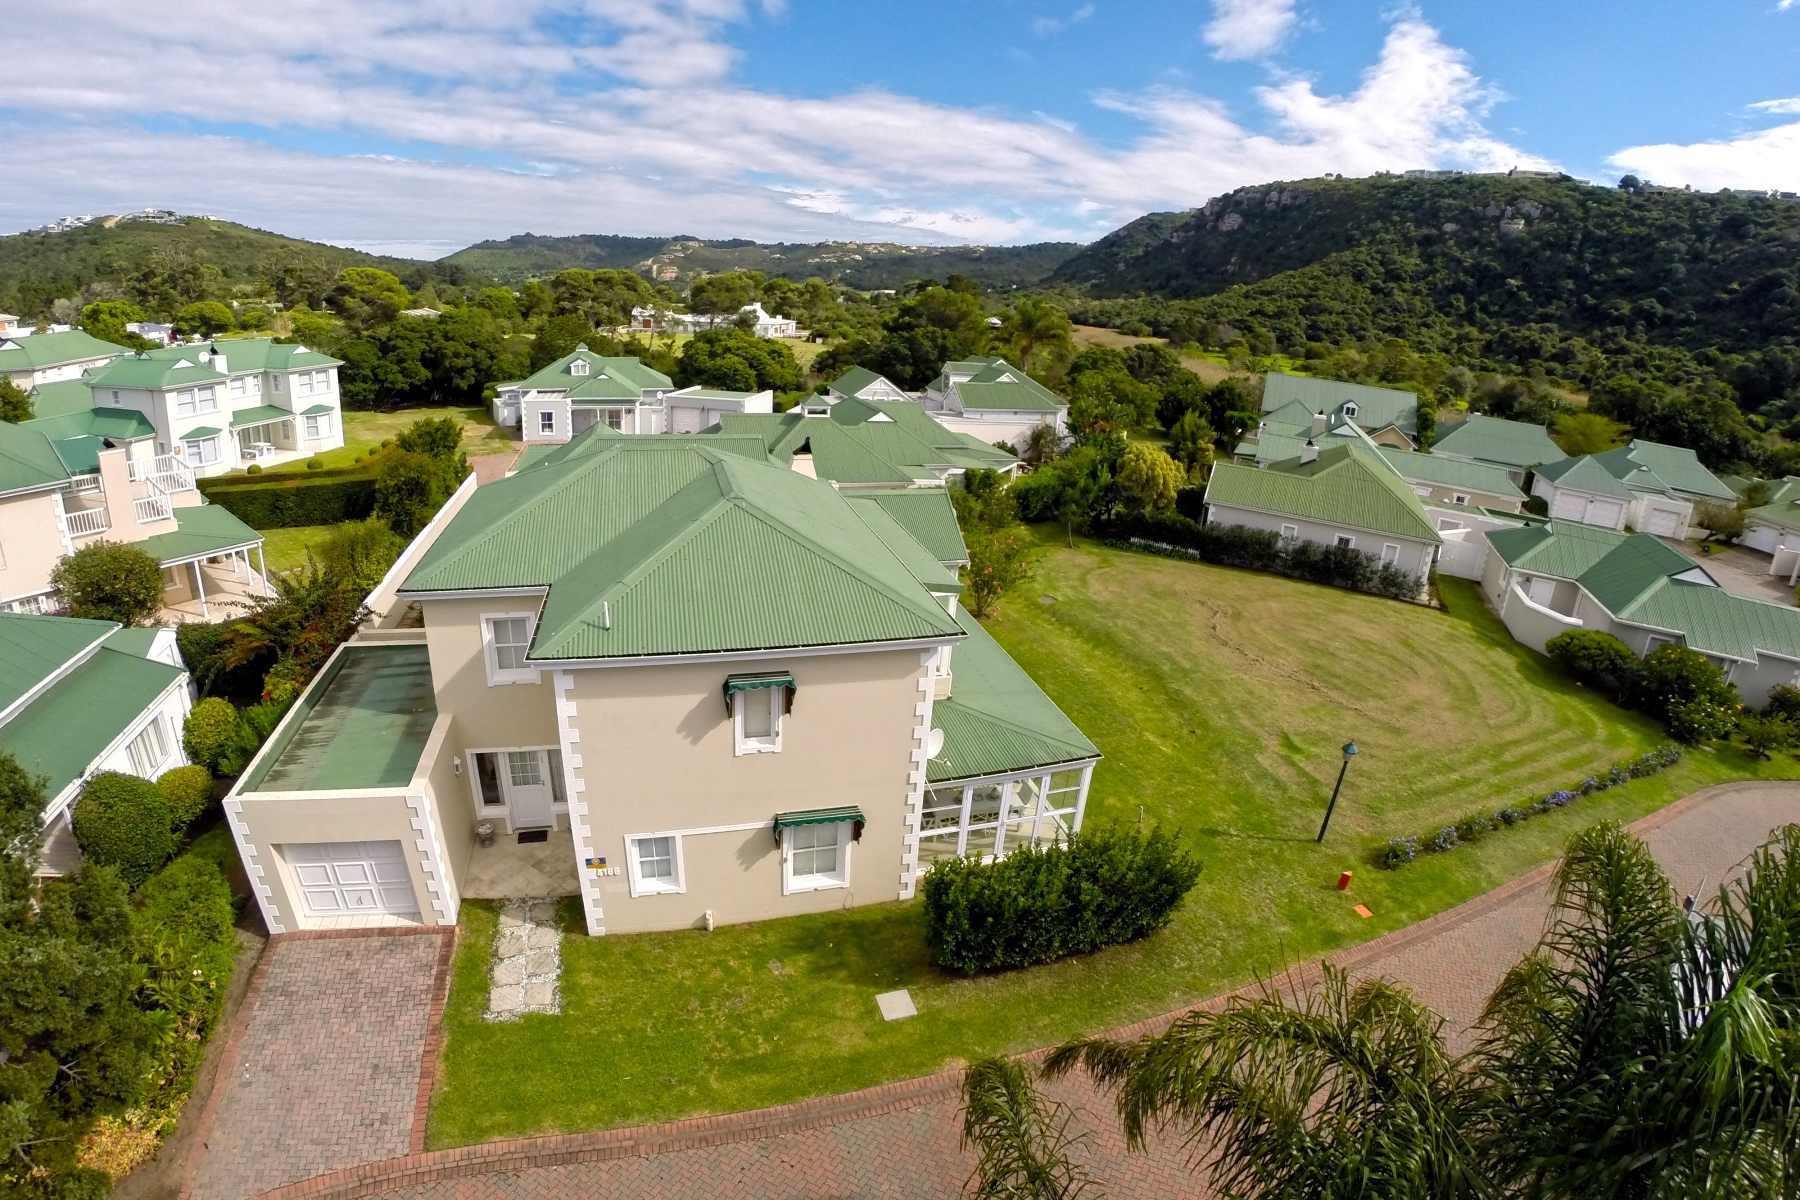 Single Family Home for Sale at River Club Garden & Home Plettenberg Bay, Western Cape, 6600 South Africa